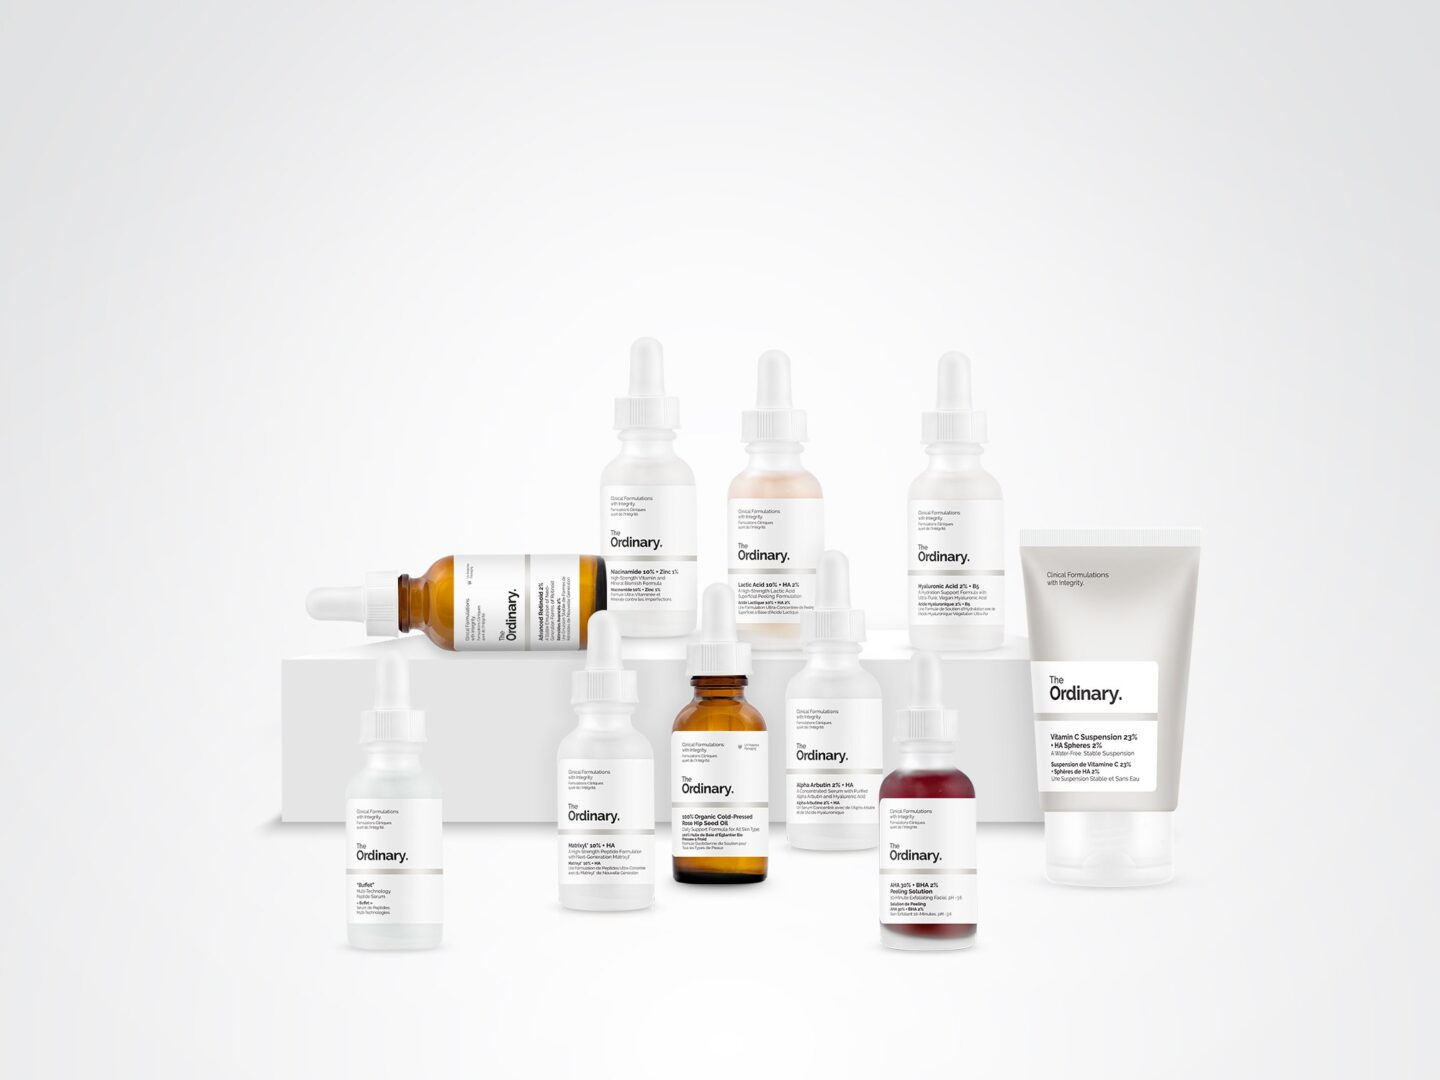 The Ordinary Skincare Frequently Asked Questions